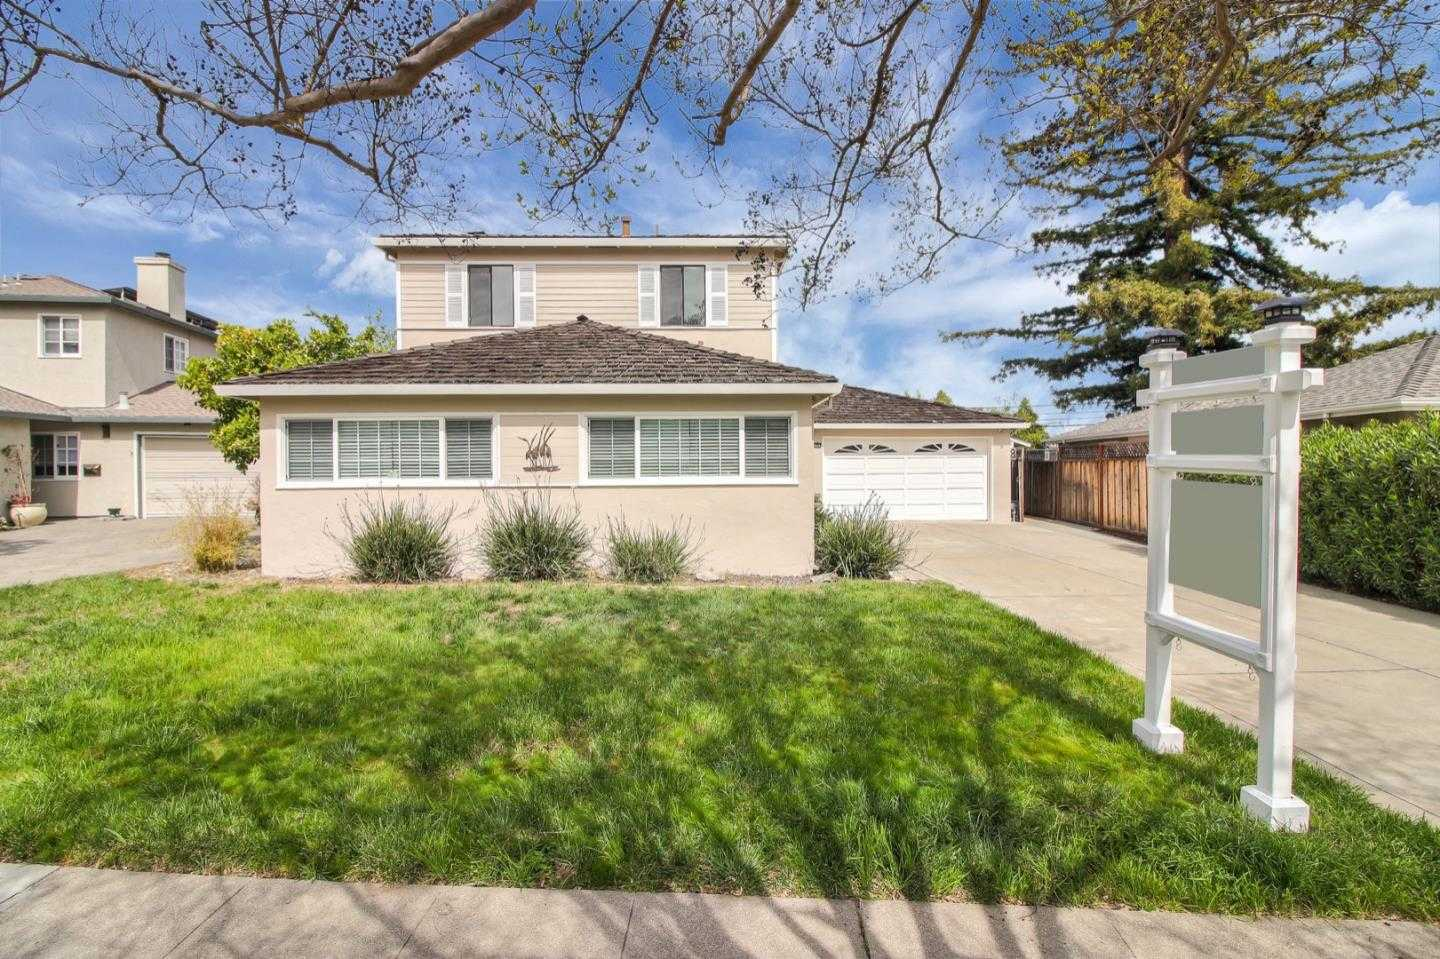 $1,998,000 - 4Br/3Ba -  for Sale in Redwood City